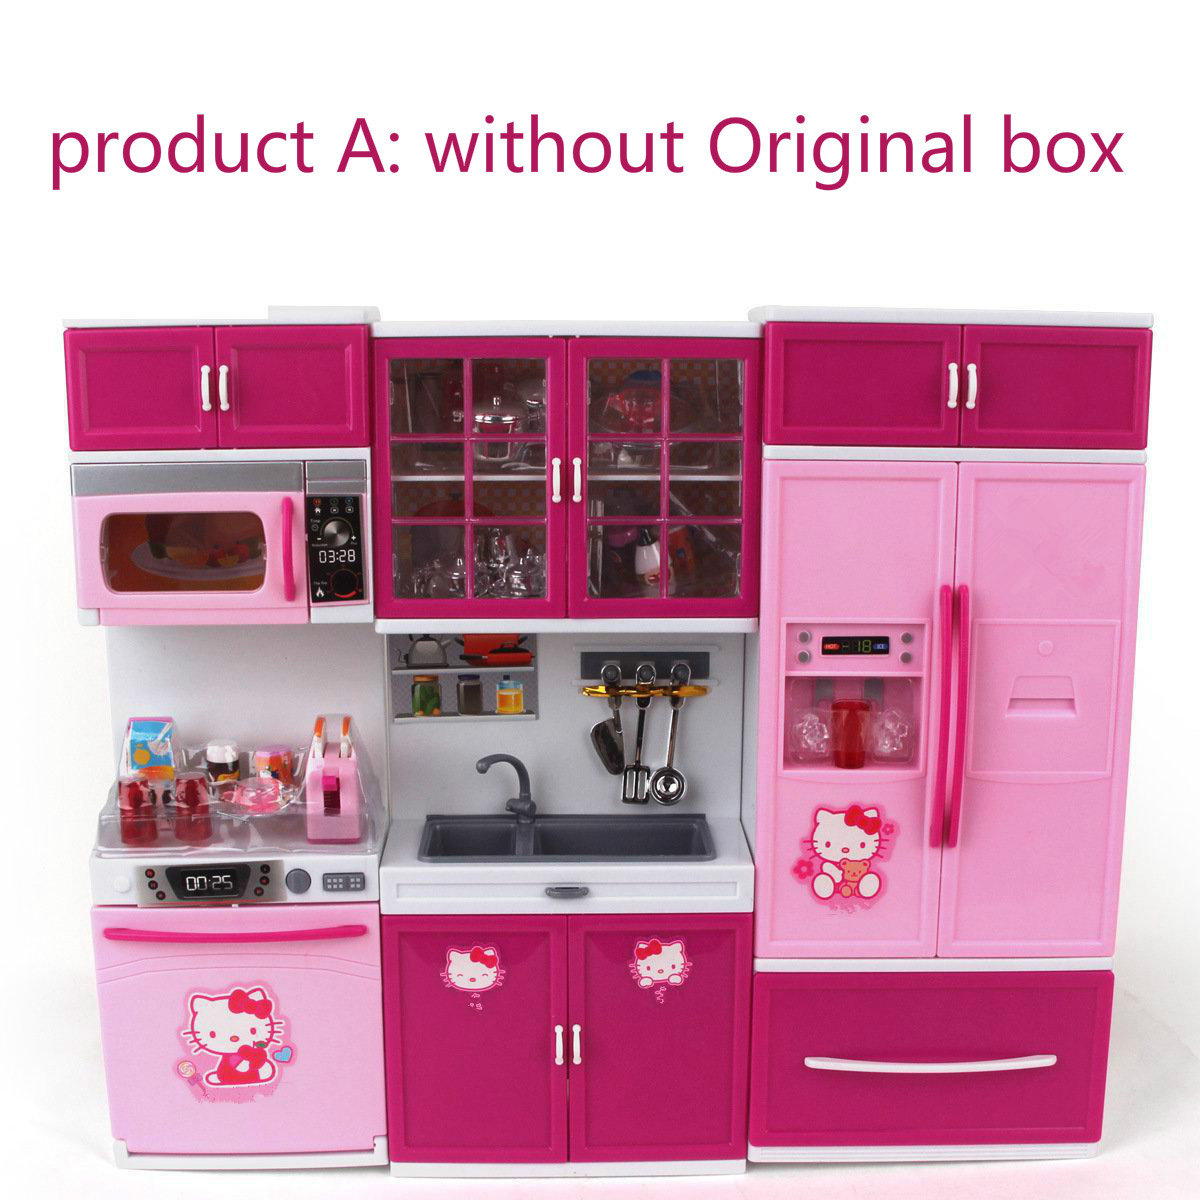 US $31.46 |Kids Large Kitchen Playset With Sound And Light Girls&Boy  Pretend Cooking Toy Play Set Pink Simulation Cupboard Gift Brinquedos-in  Kitchen ...